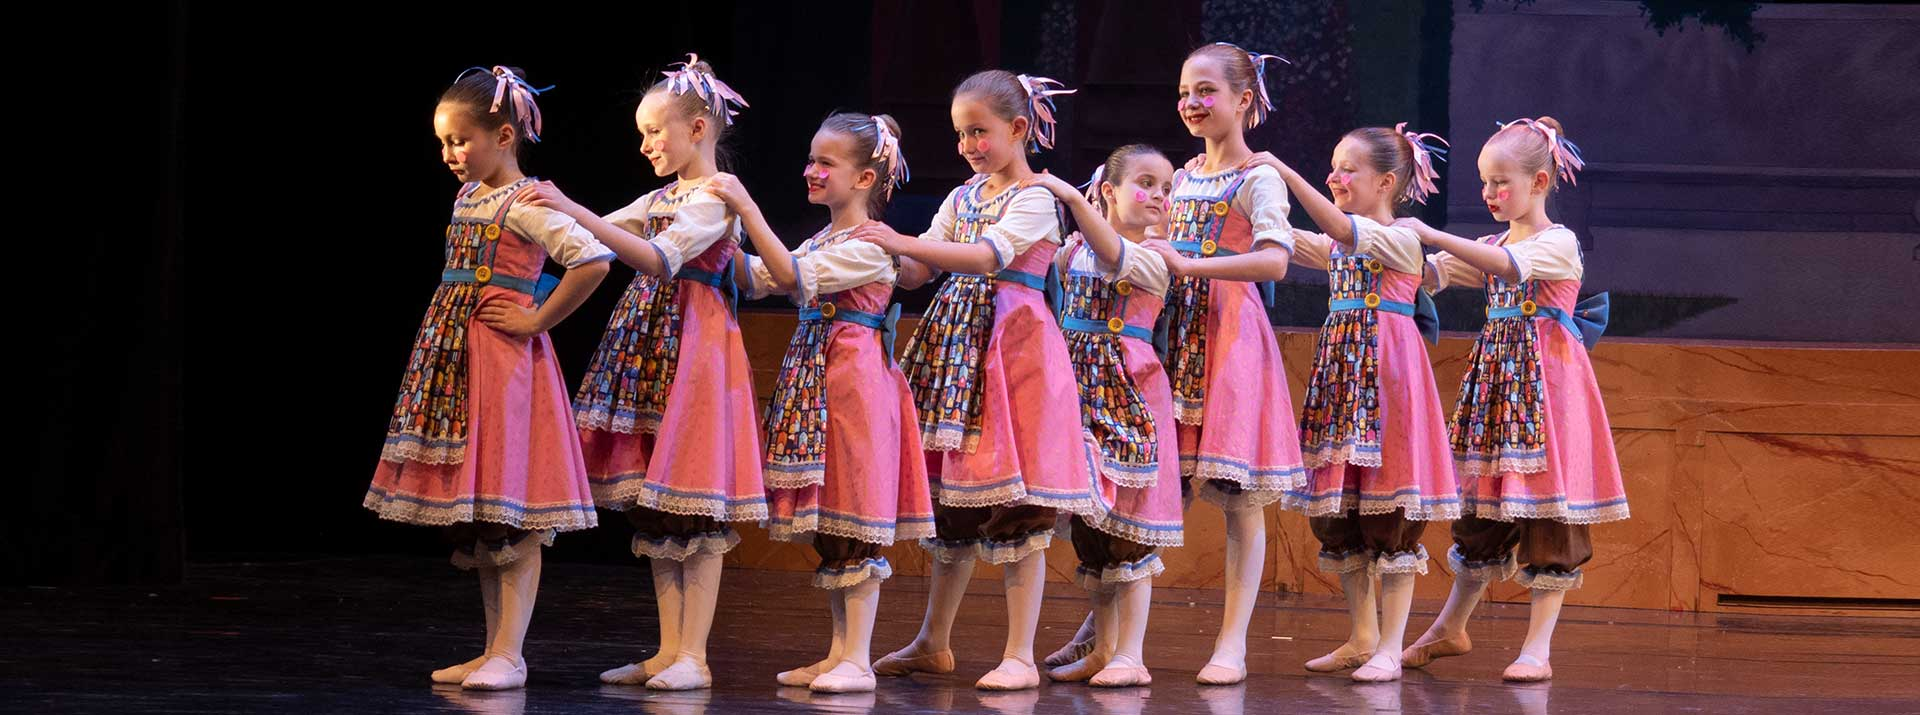 Thanking all donaors of Garcen City Ballet - dancers on stage